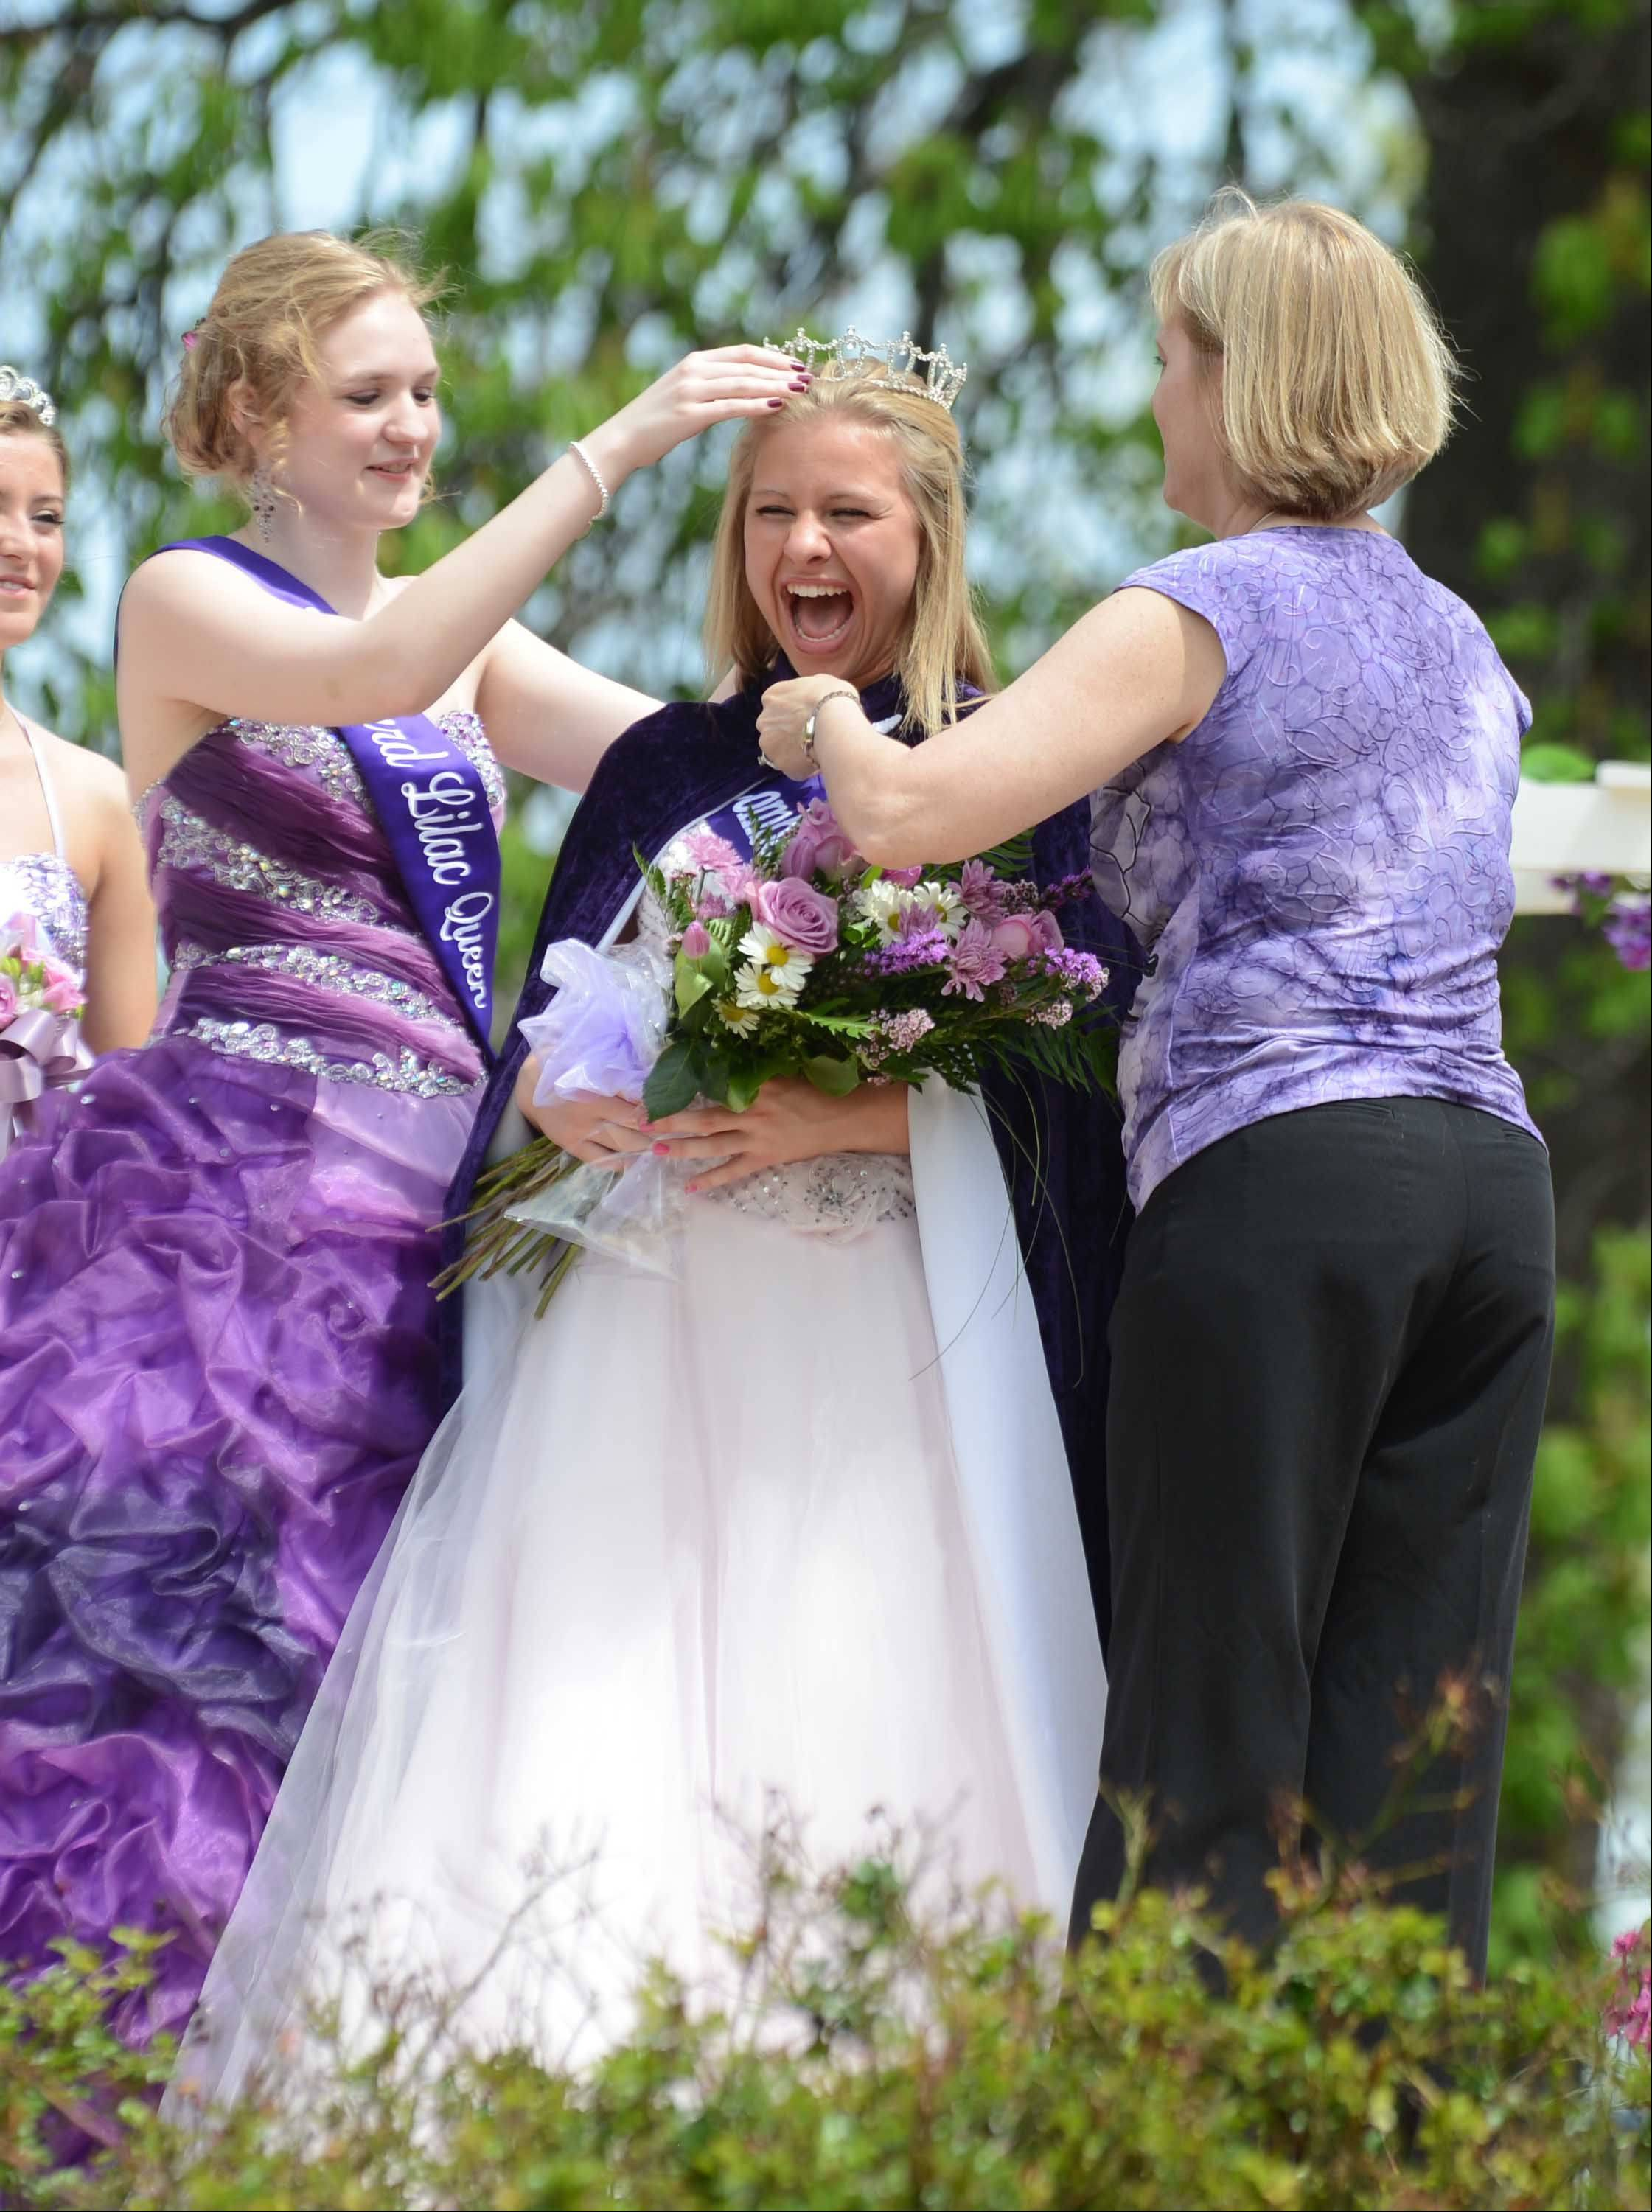 2012 Lilac Queen Jennie Mueller and Terri Soehrmann crown 2013 Lilac Queen Megan Cotterill on Saturday afternoon at Lilacia Park in Lombard. The coronation ceremony kicked off the 83rd annual Lilac Time, which runs until May 19 and will include tours, plant sales, concerts, an arts and crafts fair and parade.